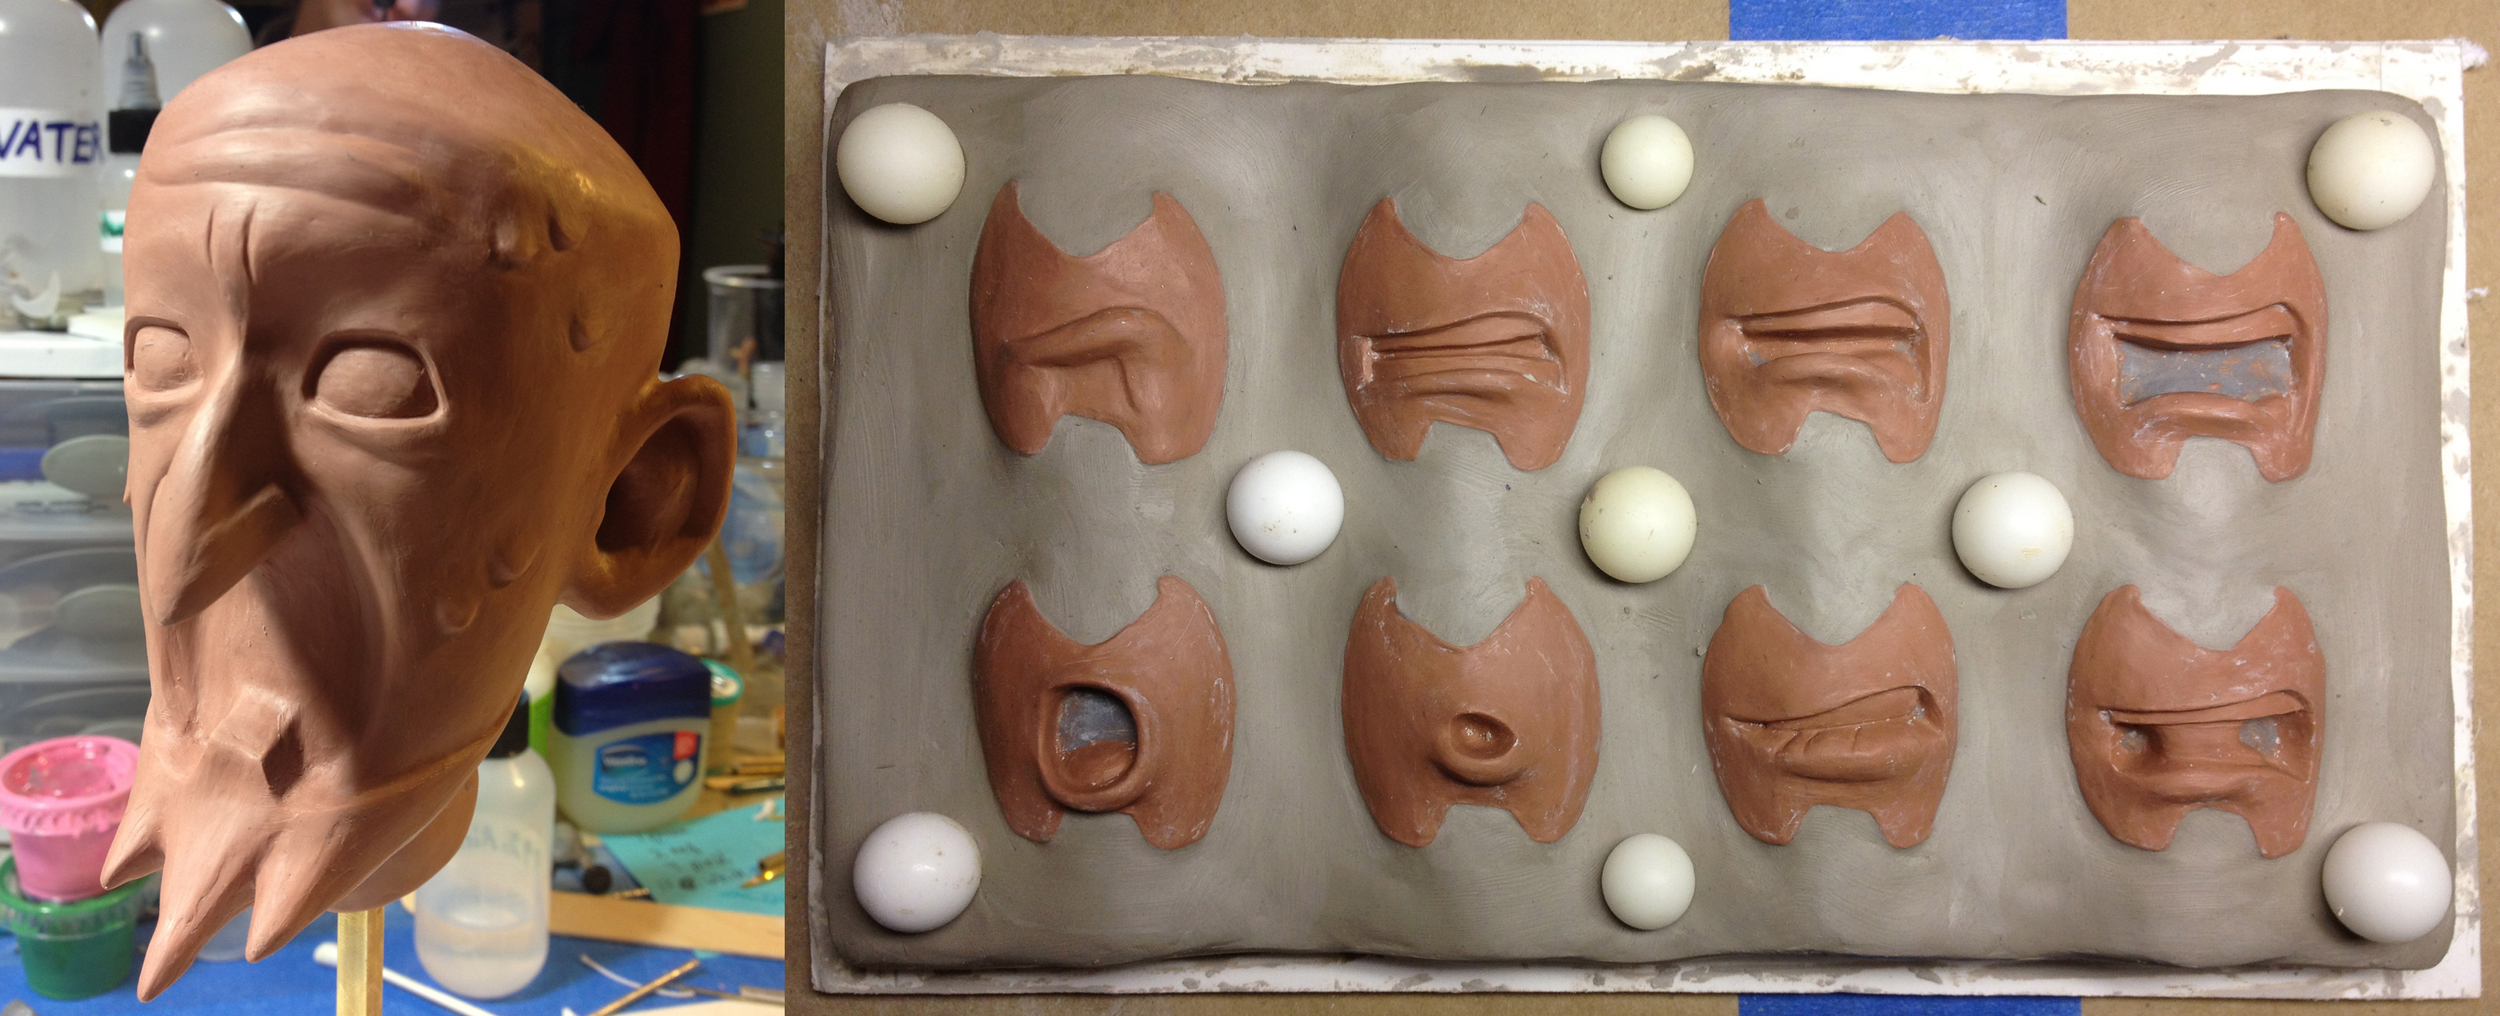 """Dr. Venture head sculpt and  replacement mouths being prepared for mold.  The Venture Bros.  season 5 episode 4, """"Spanakopita."""" Stoopid Buddy Stoodios, 2013"""